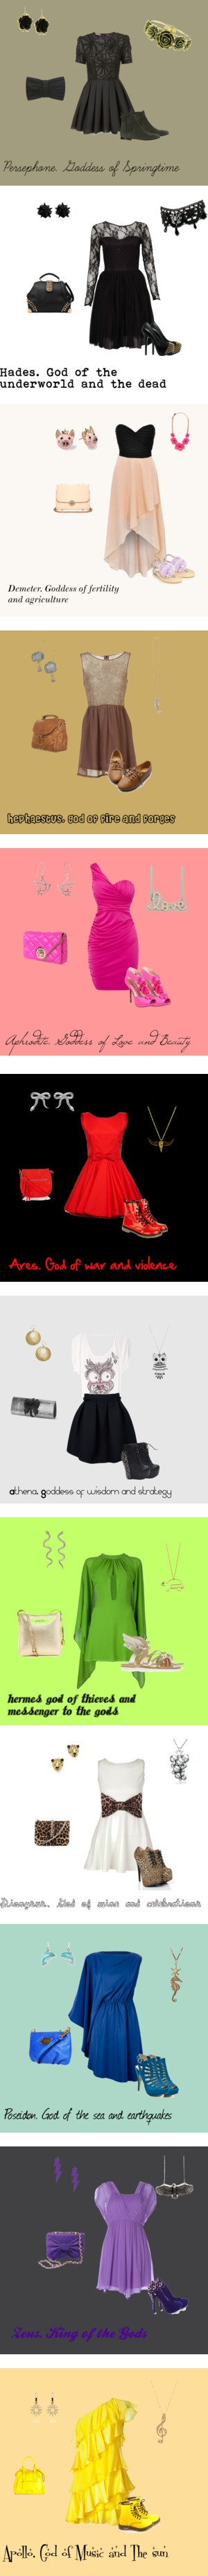 """Greek gods and goddess's"" by lalalauren1 on Polyvore"